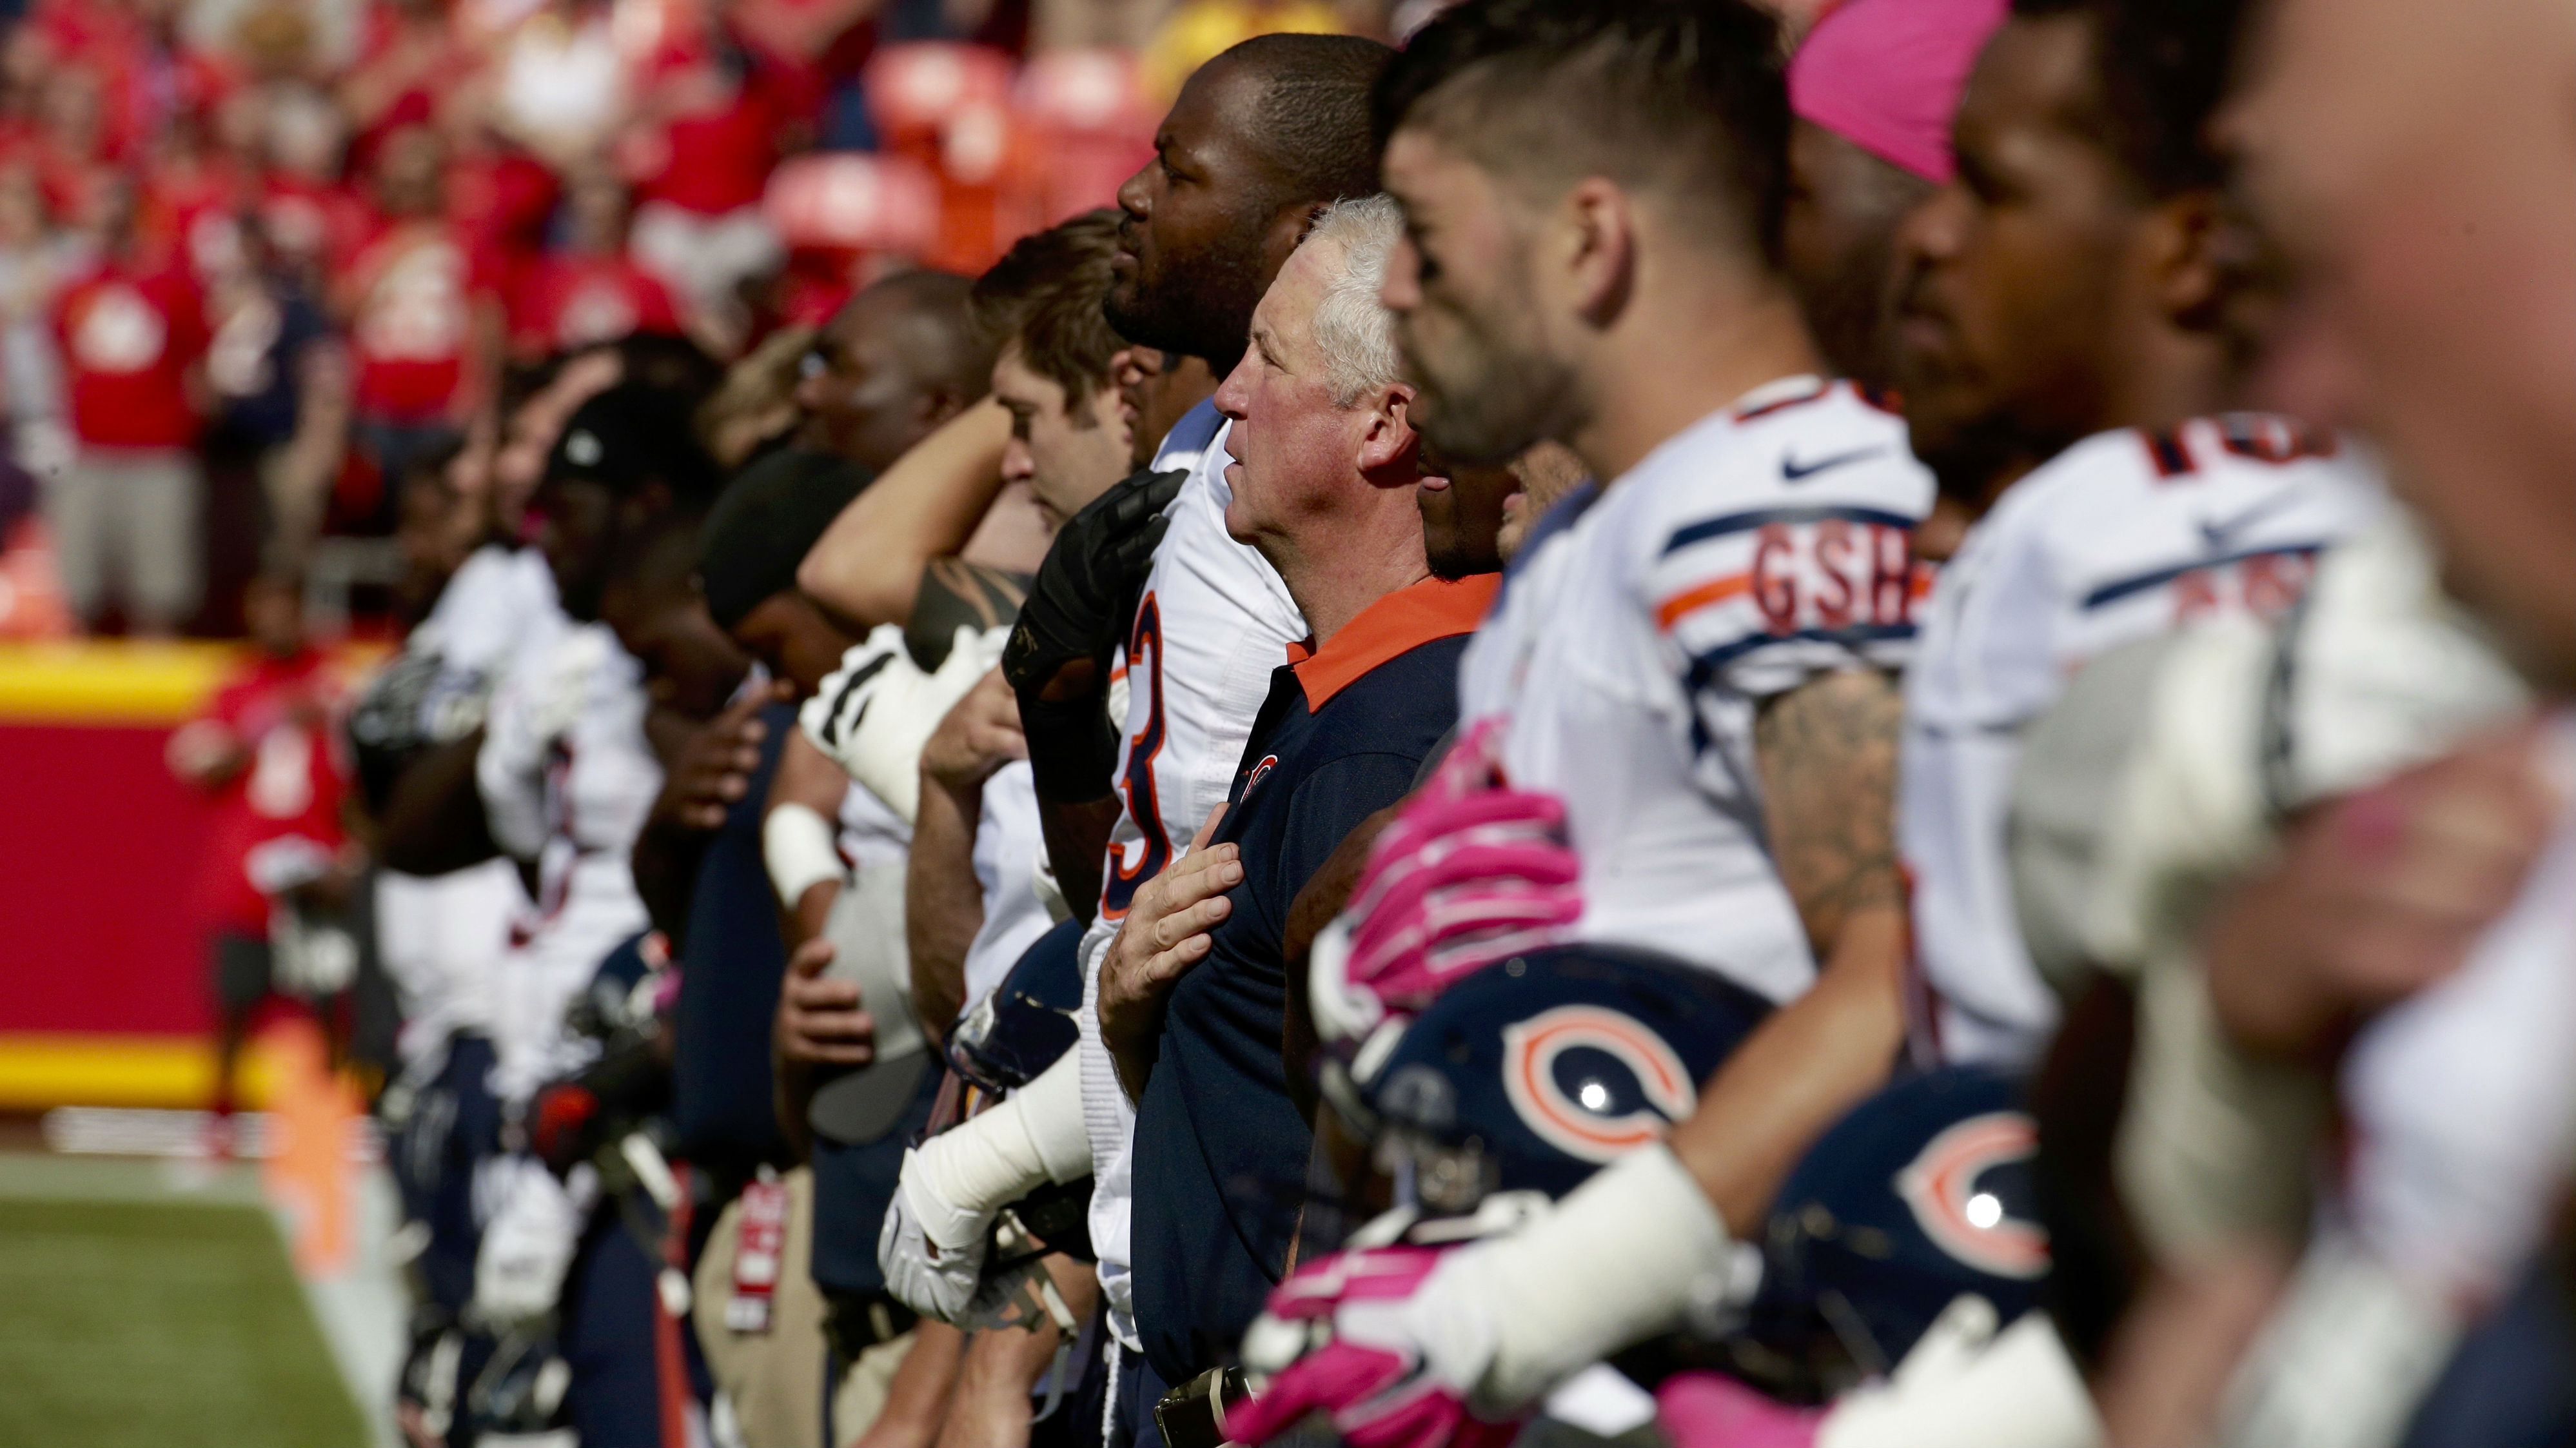 Chicago Bears head coach John Fox stands with his players during the singing of the Star Spangled Banner before an NFL football game between the Kansas City Chiefs and the Chicago Bears in Kansas City, Mo., Sunday, Oct. 11, 2015. (AP Photo/Charlie Riedel)